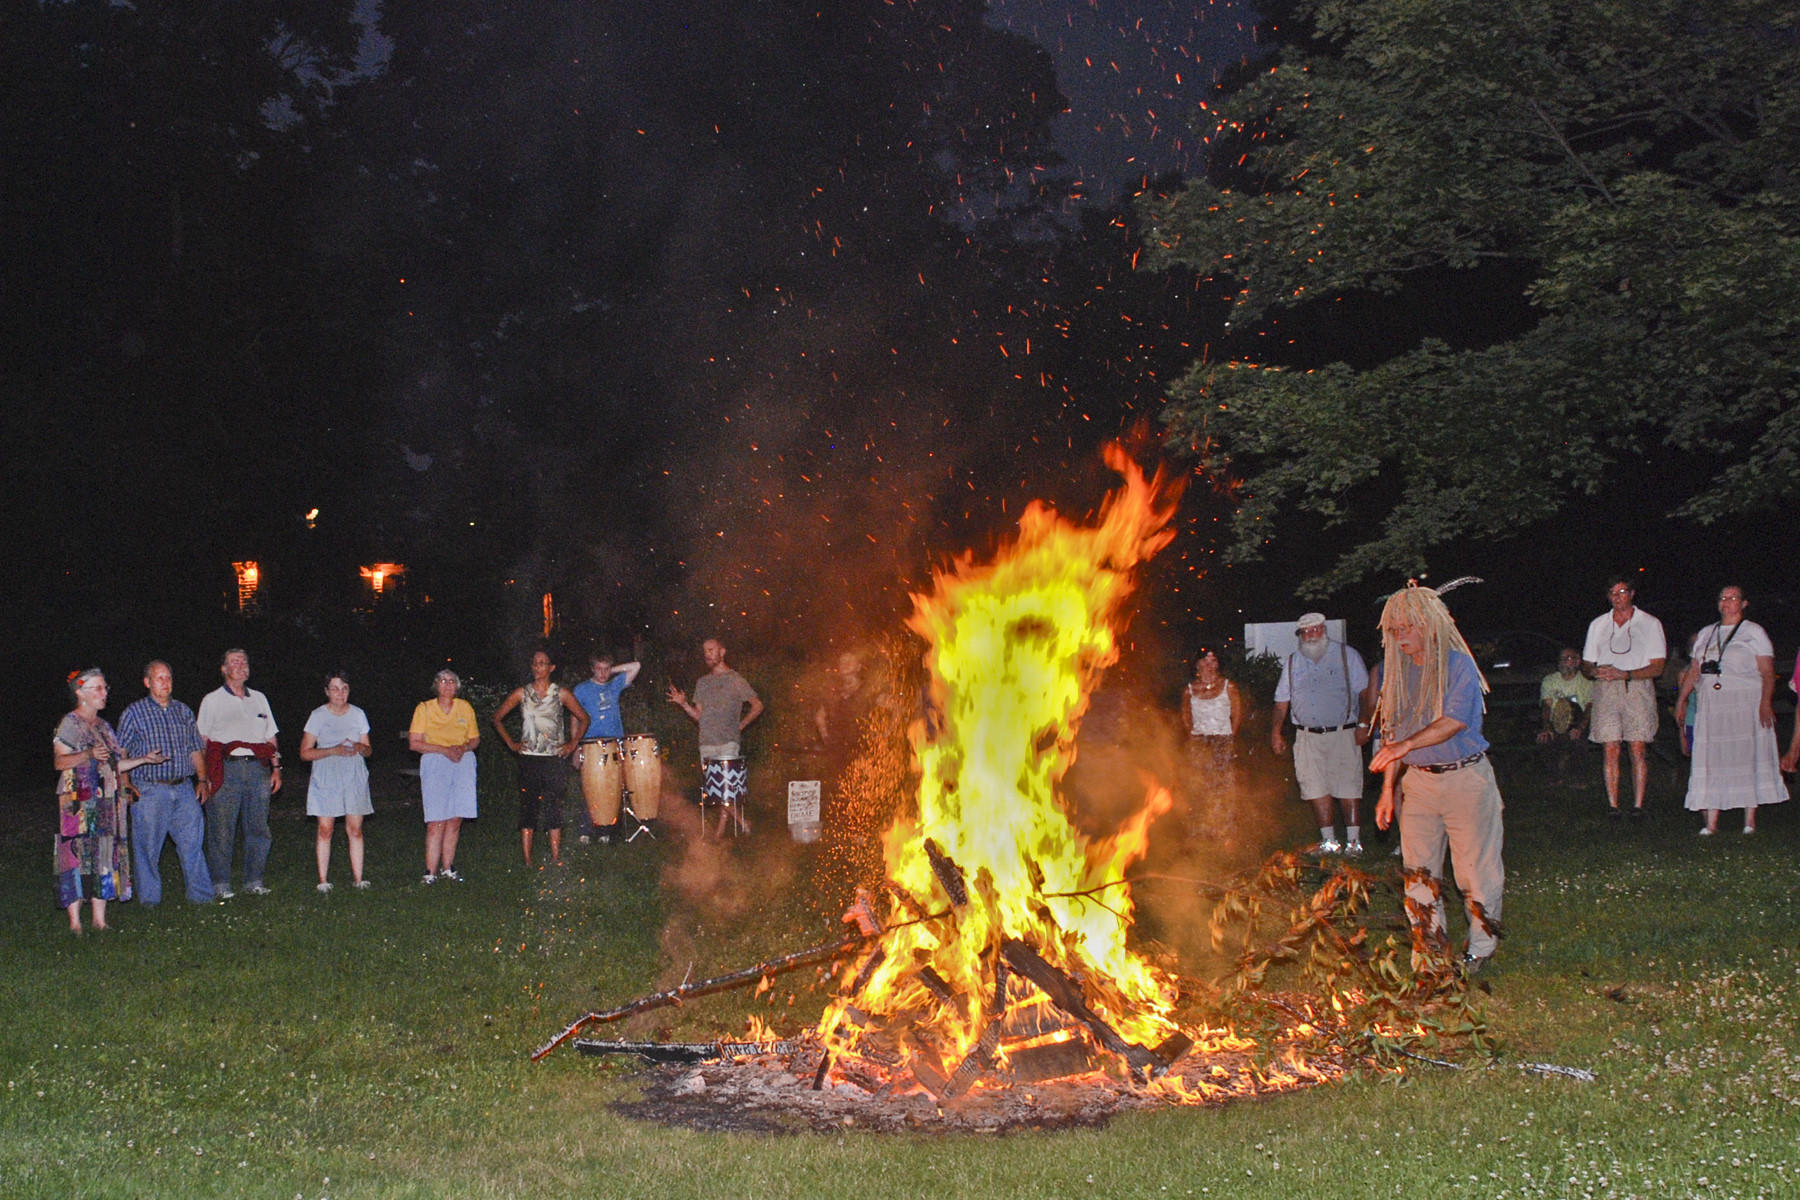 Connecticut Audubon Center at Glastonbury will welcome summer at its annual summer solstice program June 20.